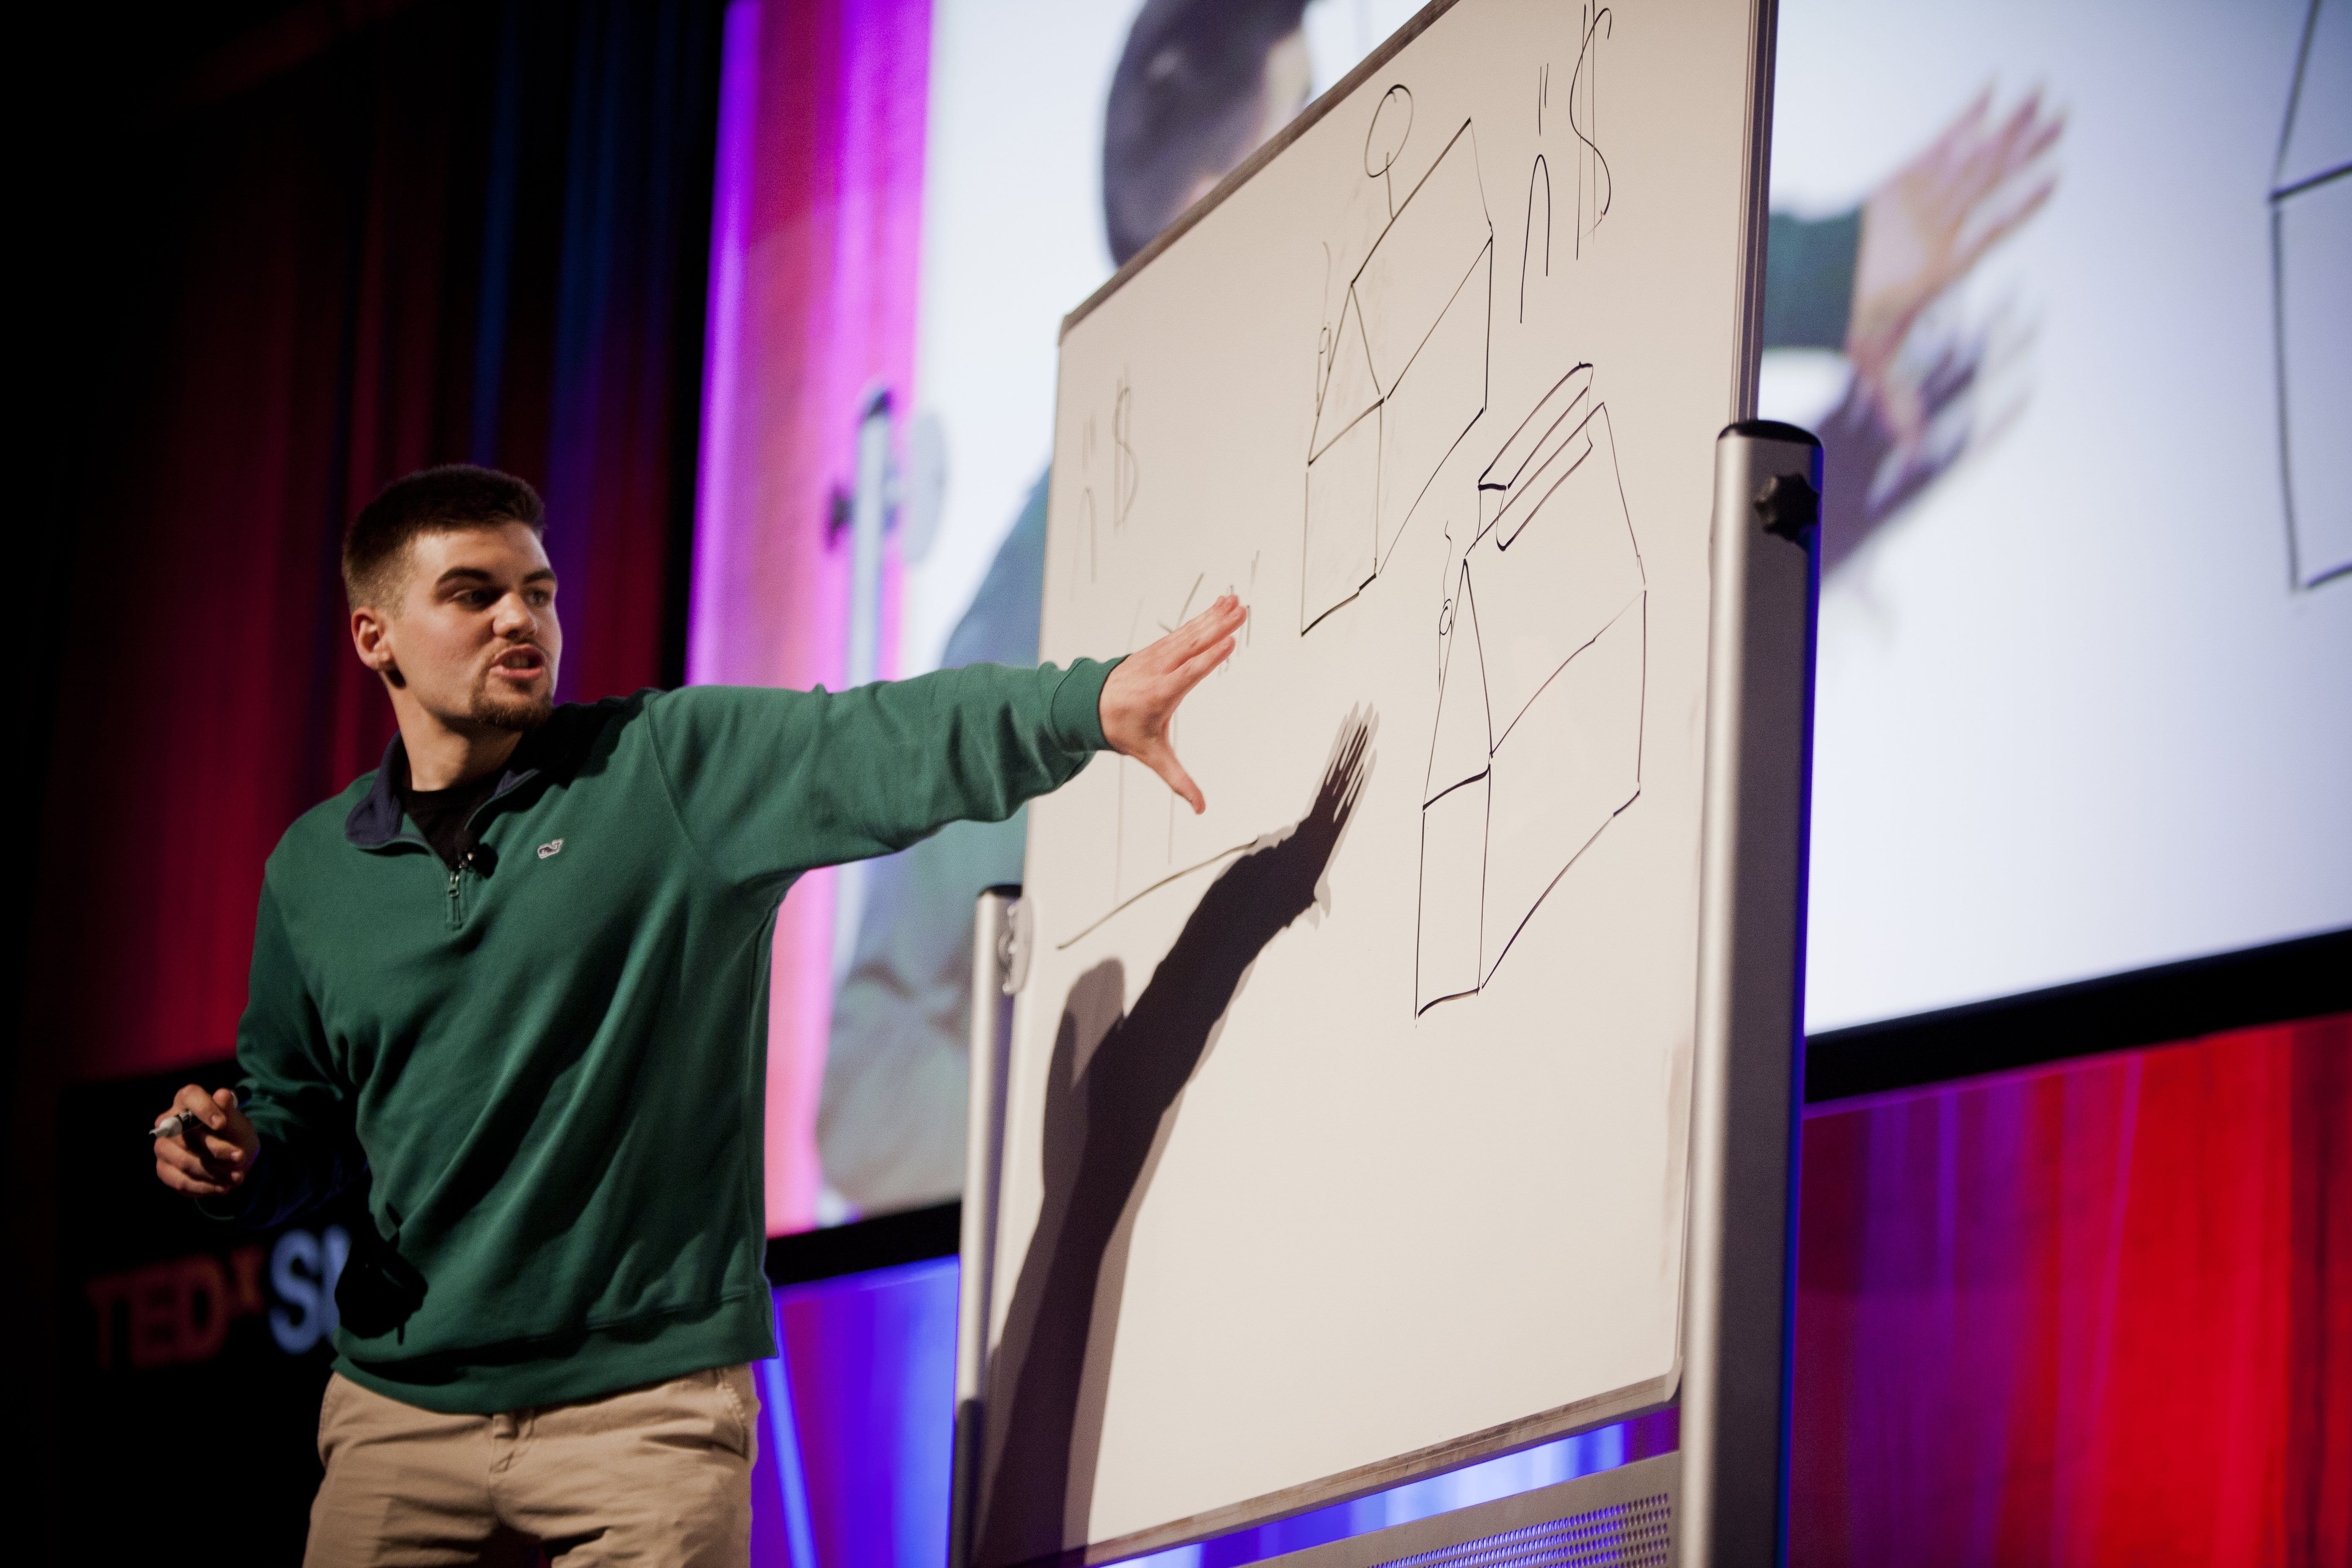 One day's TEDx talk is the next day's great invention